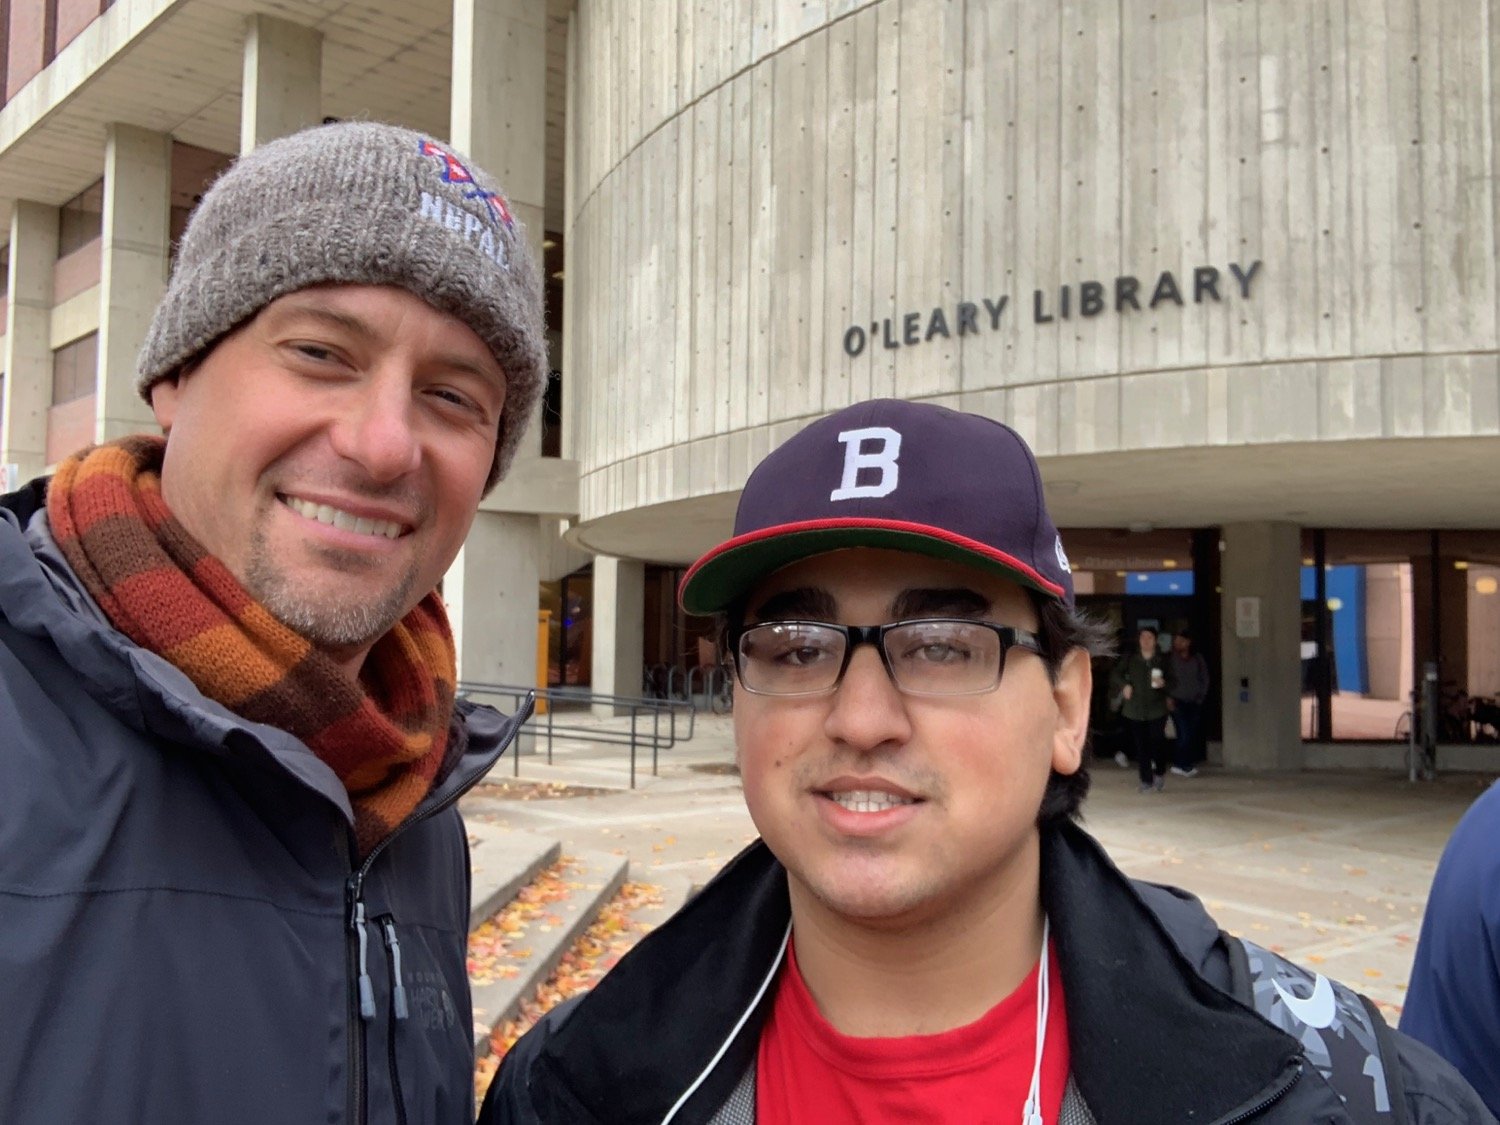 It was a crazy day on the campus of UMass-Lowell, but I did get to share with this curious student from Nepal.